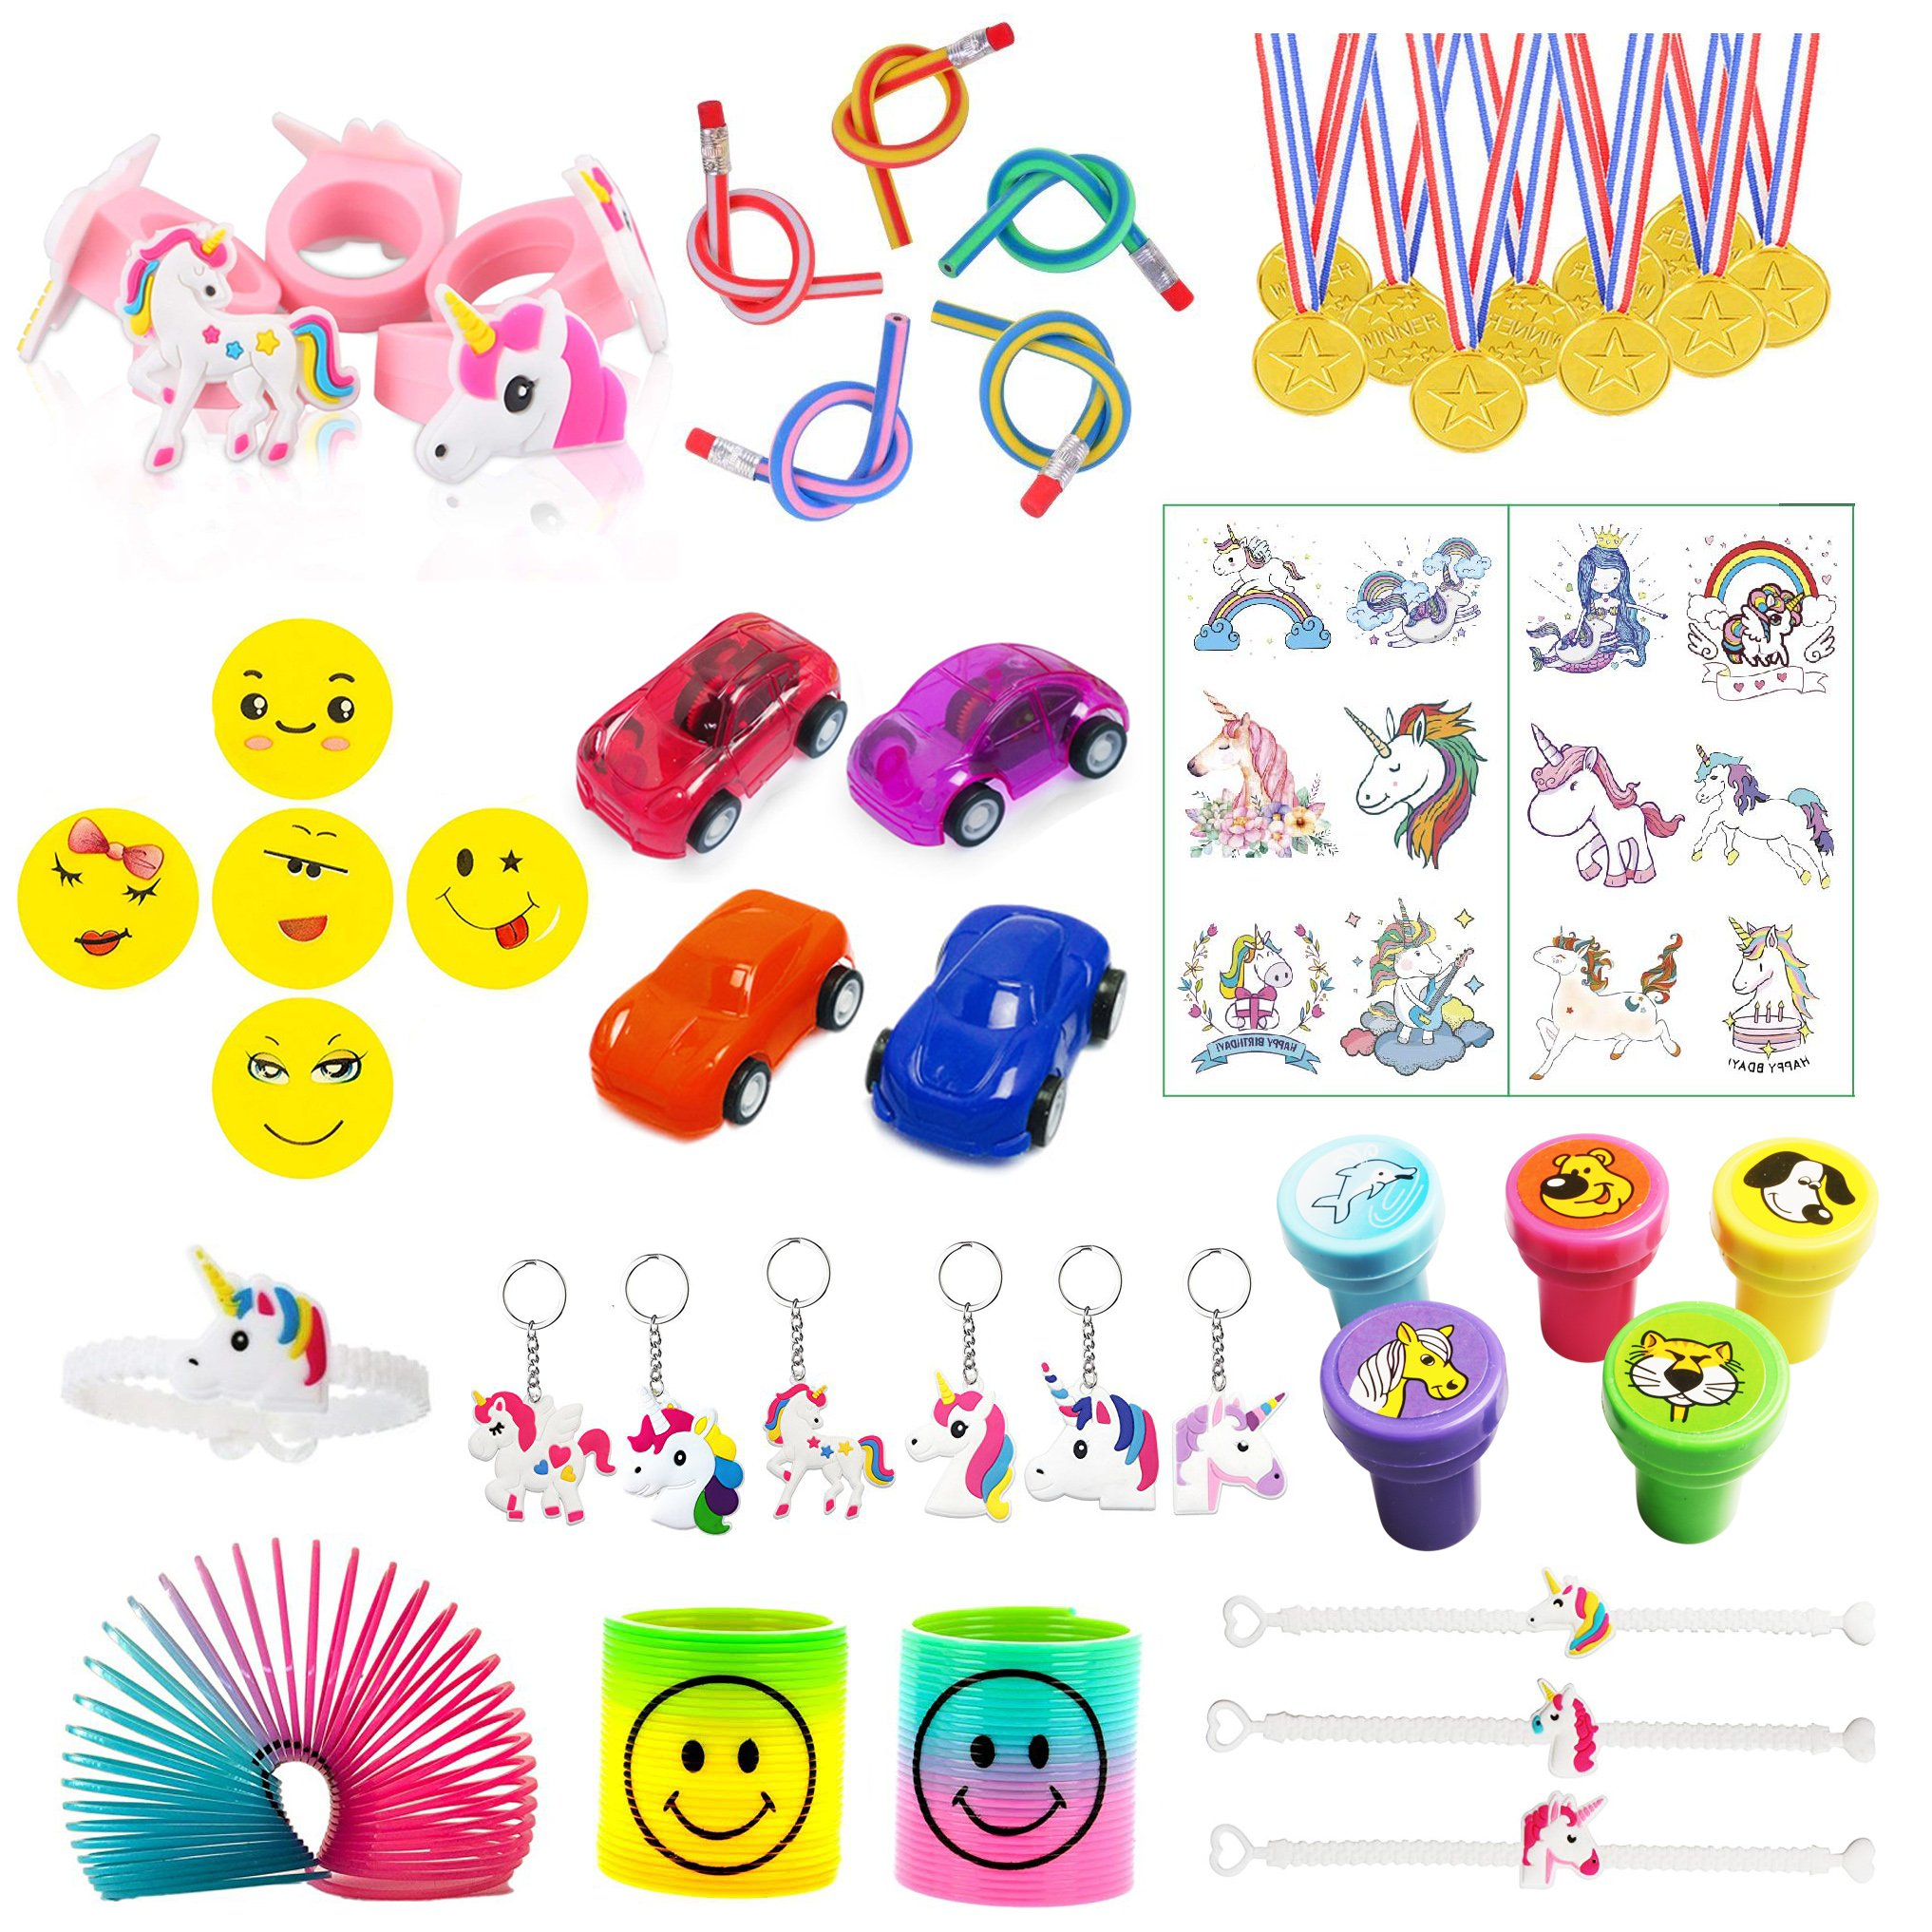 MIXED PARTY BAG FILLER TOYS FAVOUR PRIZES BOYS GIRLS BIRTHDAY LOOT FILLERS